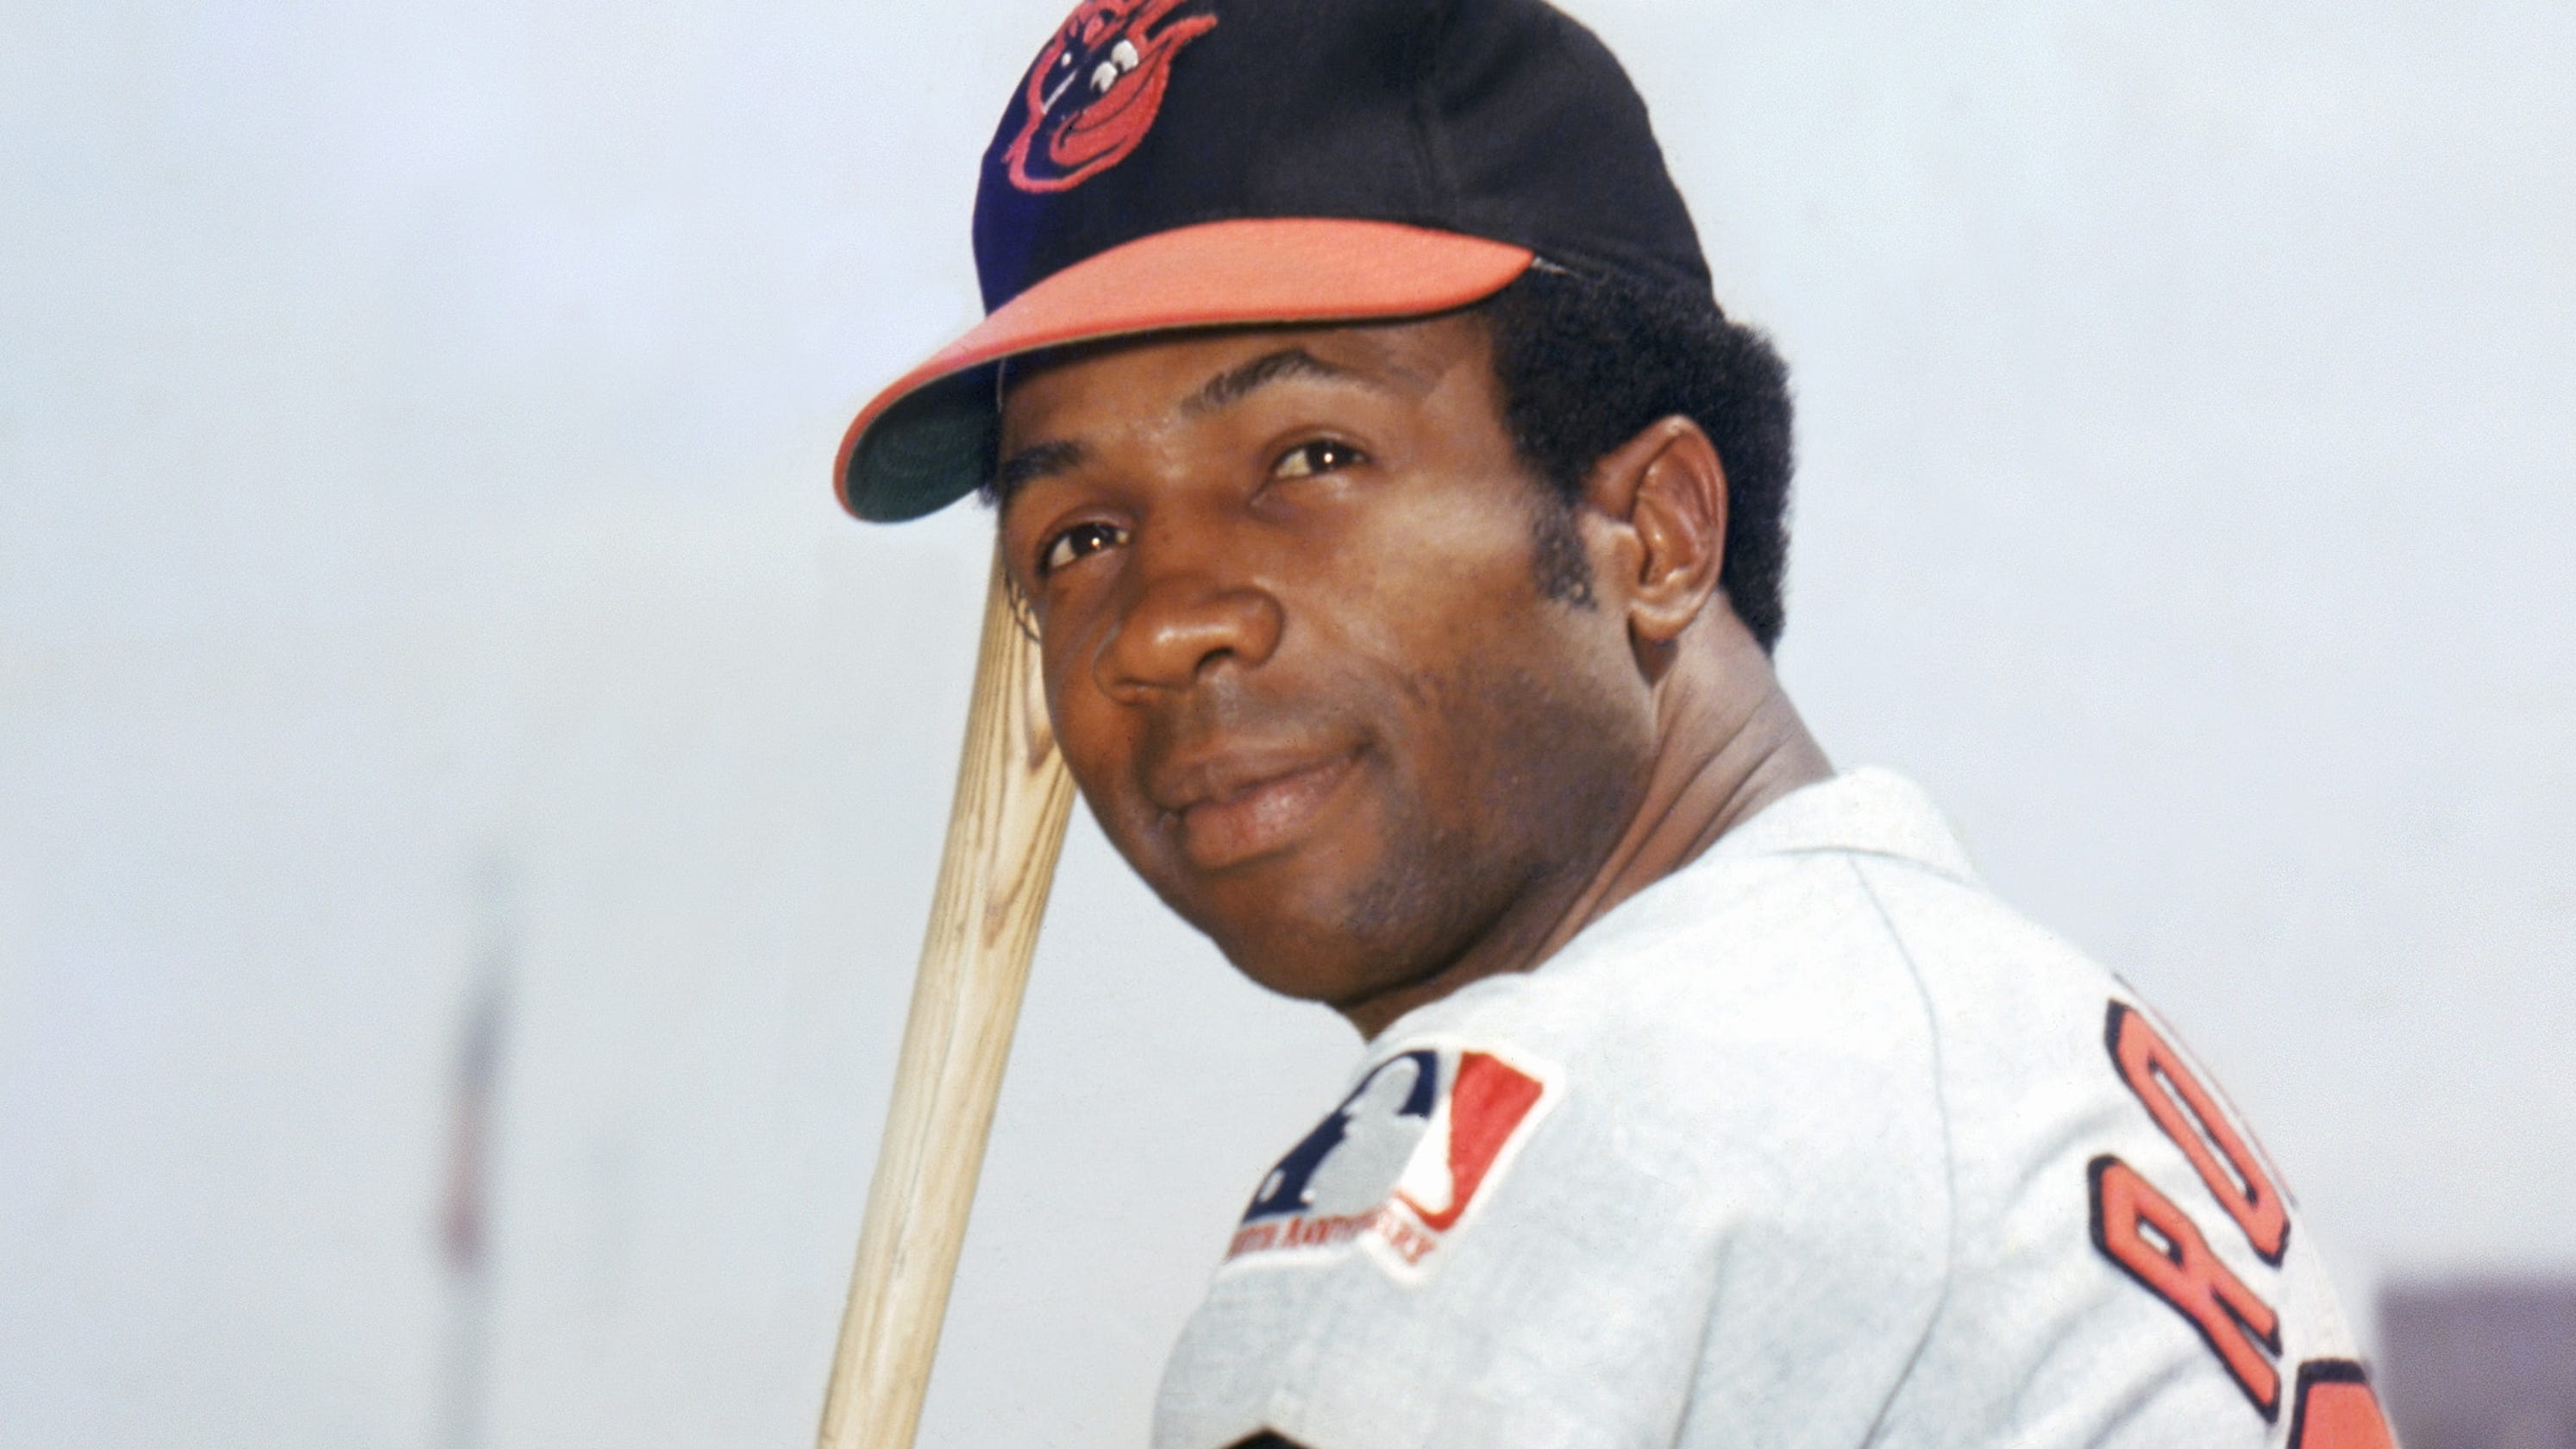 c6c1438ef Frank Robinson  Hall of Famer and baseball pioneer in poor health